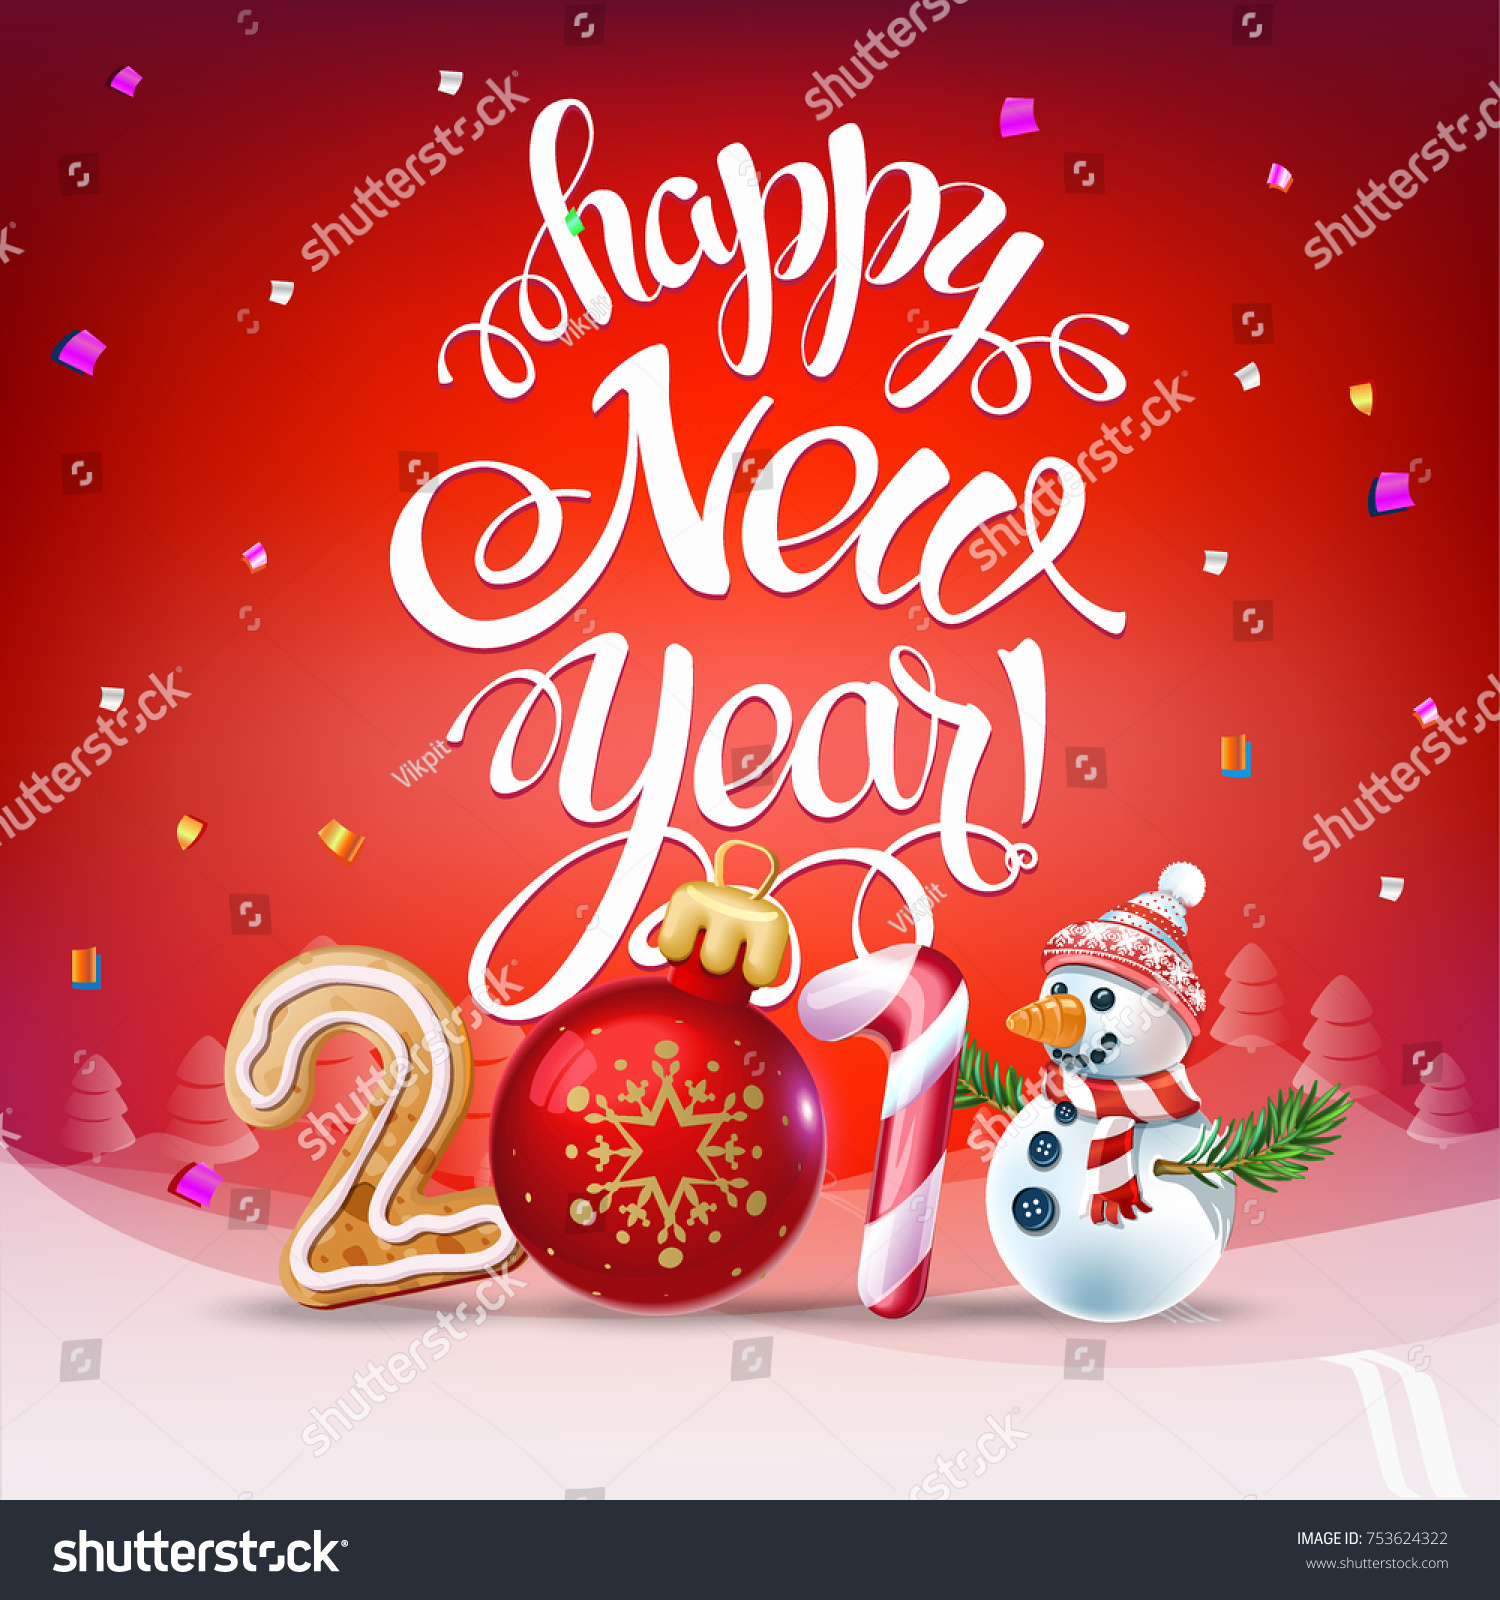 Happy new year 2018 decoration poster stock vector for Decoration new year